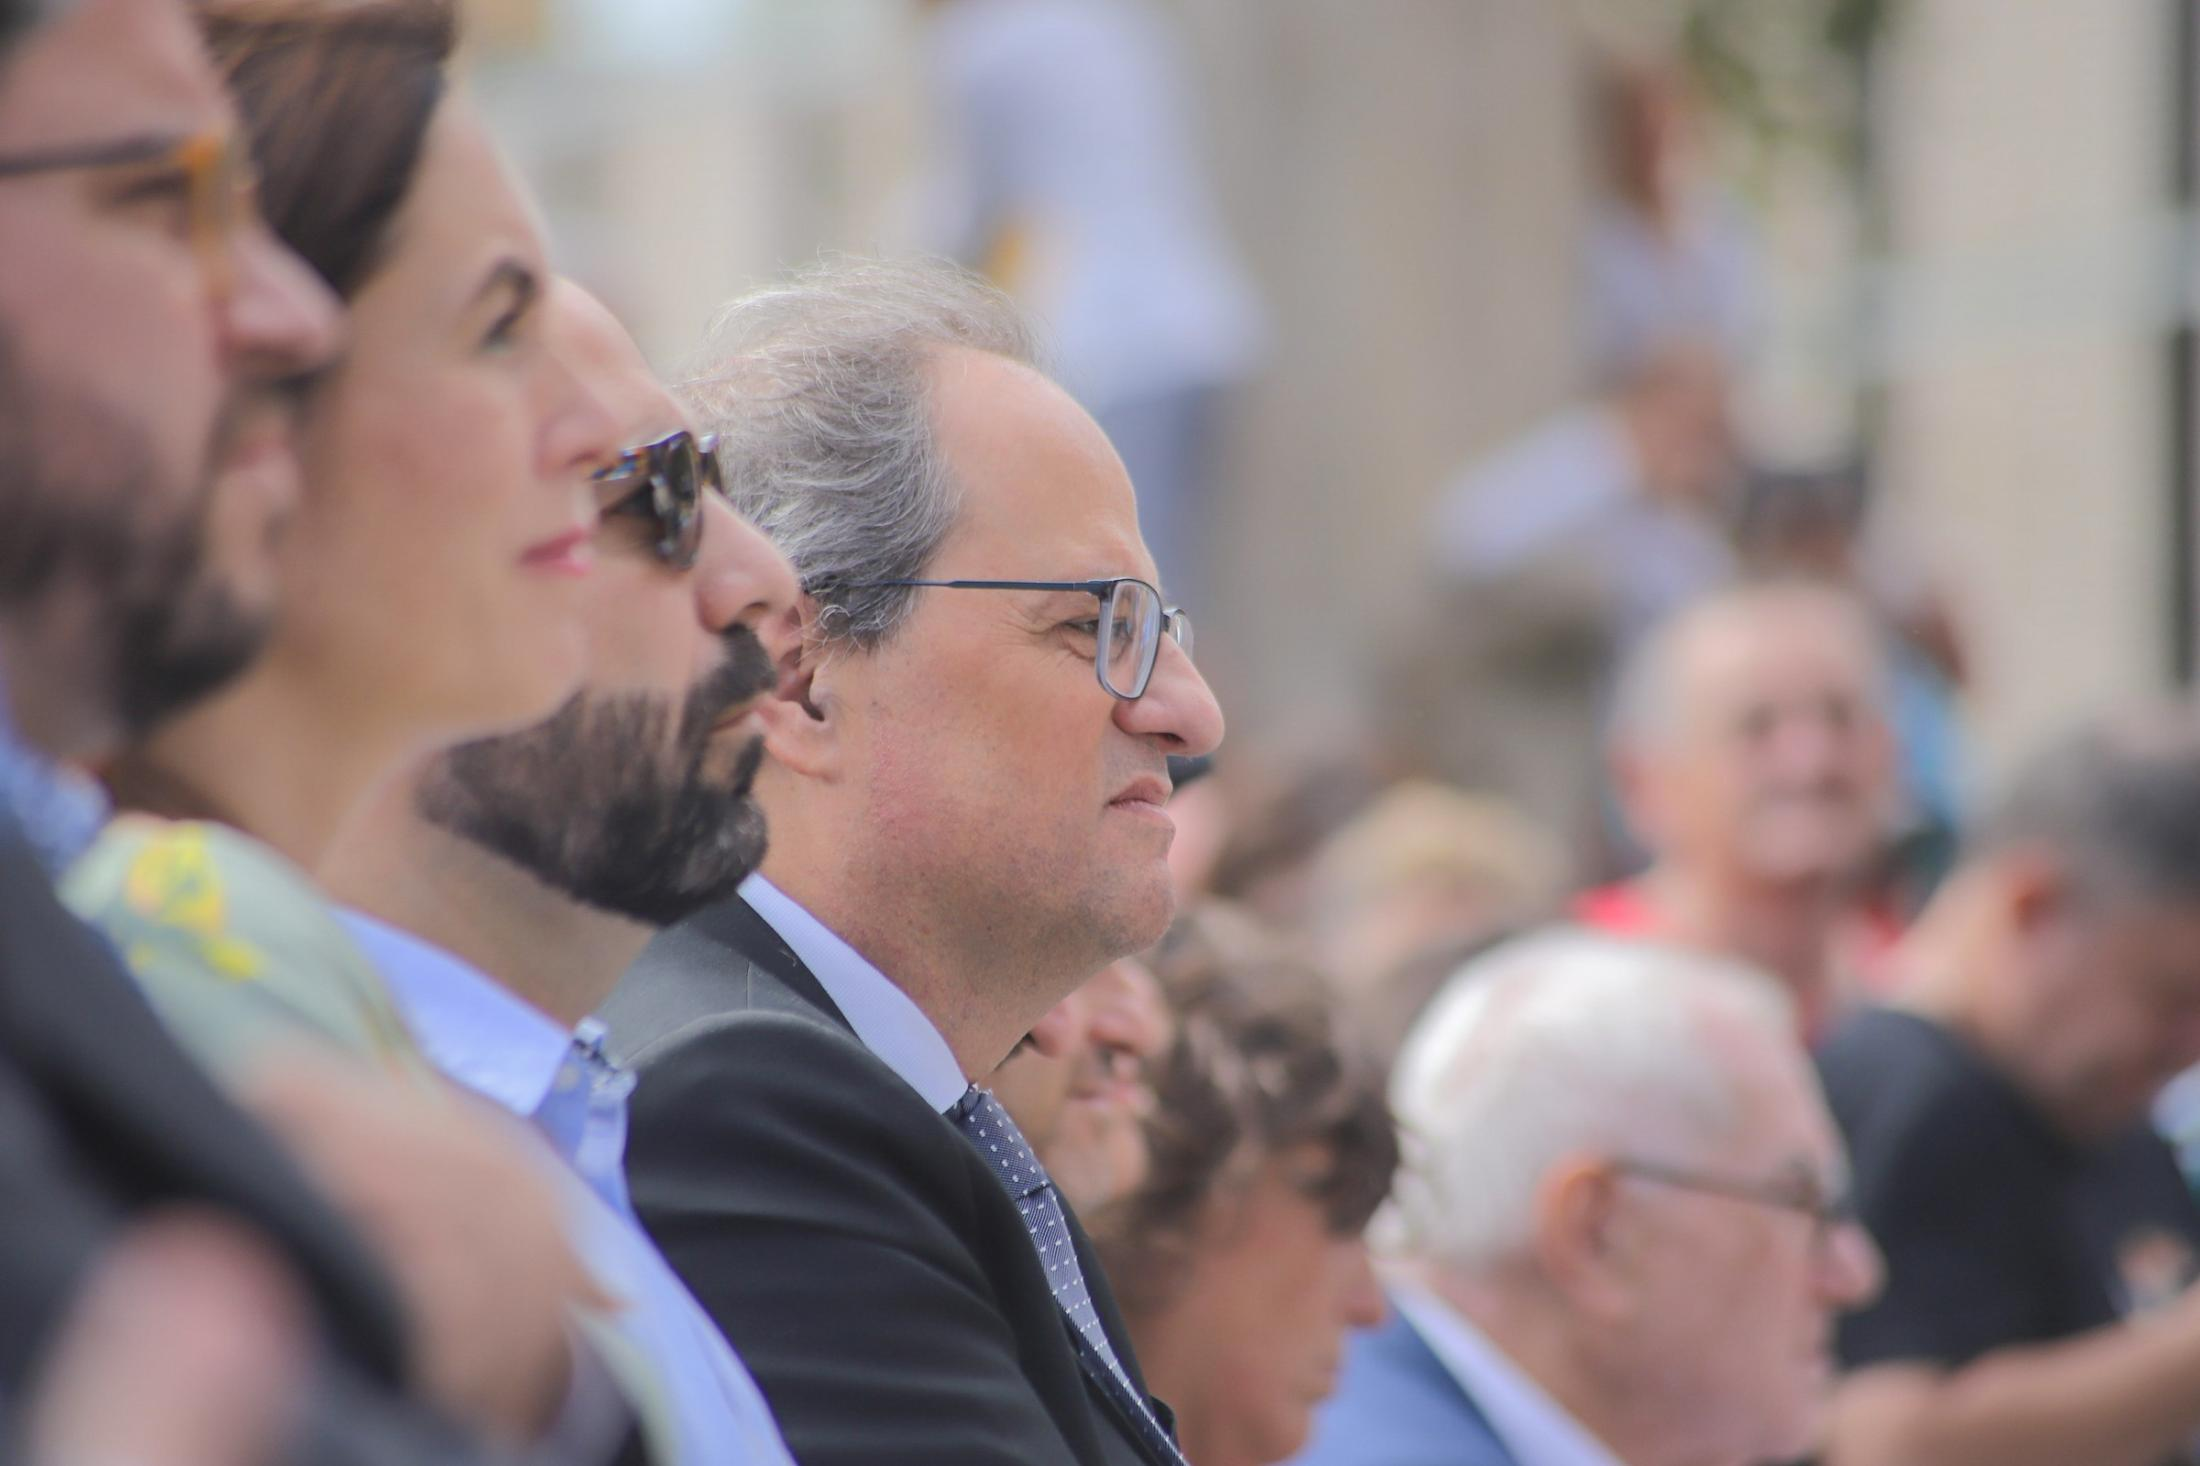 """The president of the Generalitat, Quim Torra, calls the president of the Government, Pedro Sánchez, who has not answered his call. Then he declared: """"I make a call for calm and serenity. We have always condemned and will condemn the violence. This has to stop right now. There is no reason to burn cars and commit vandalism. We cannot allow groups of provocateurs and infiltrators to break the image of serenity. It is normal and good that we protest for an unfair and aberrant sentence. The Marches for freedom are a magnificent example. On October 1 we defeated the State without destroying anything. Independence builds, does not destroy. Serenity, determination, civility and nonviolence """", has demanded and has been criticized by the youth . September 2019 Barcelona, Spain."""